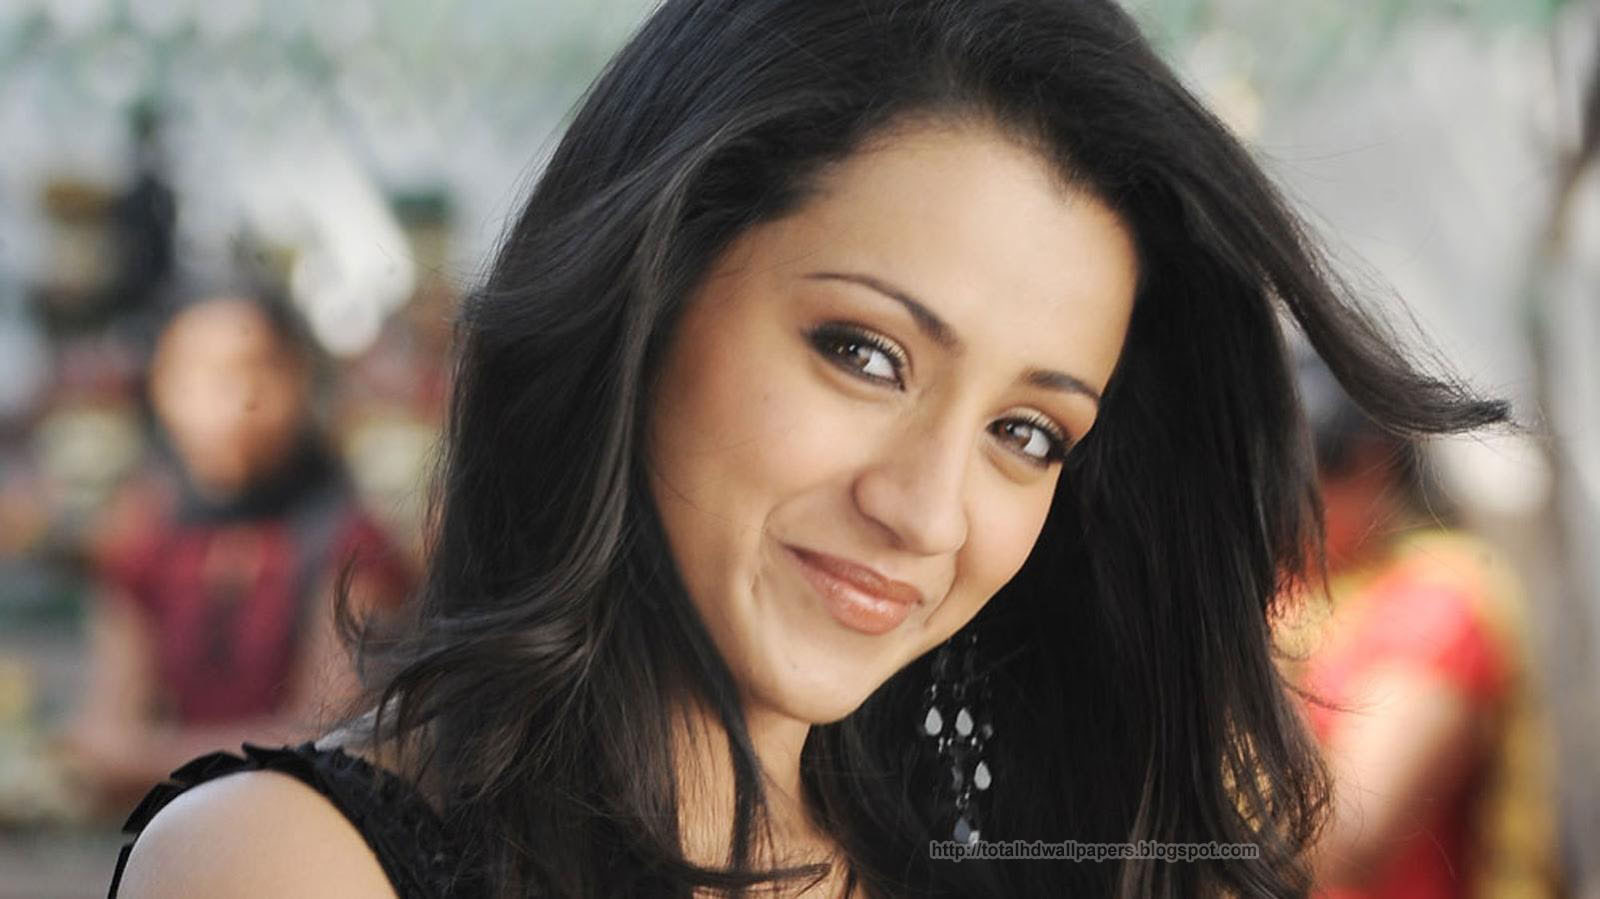 Trisha krishnan wallpapers trisha krishnan wallpaper 1 - Trisha Krishnan Hd Wallpapers